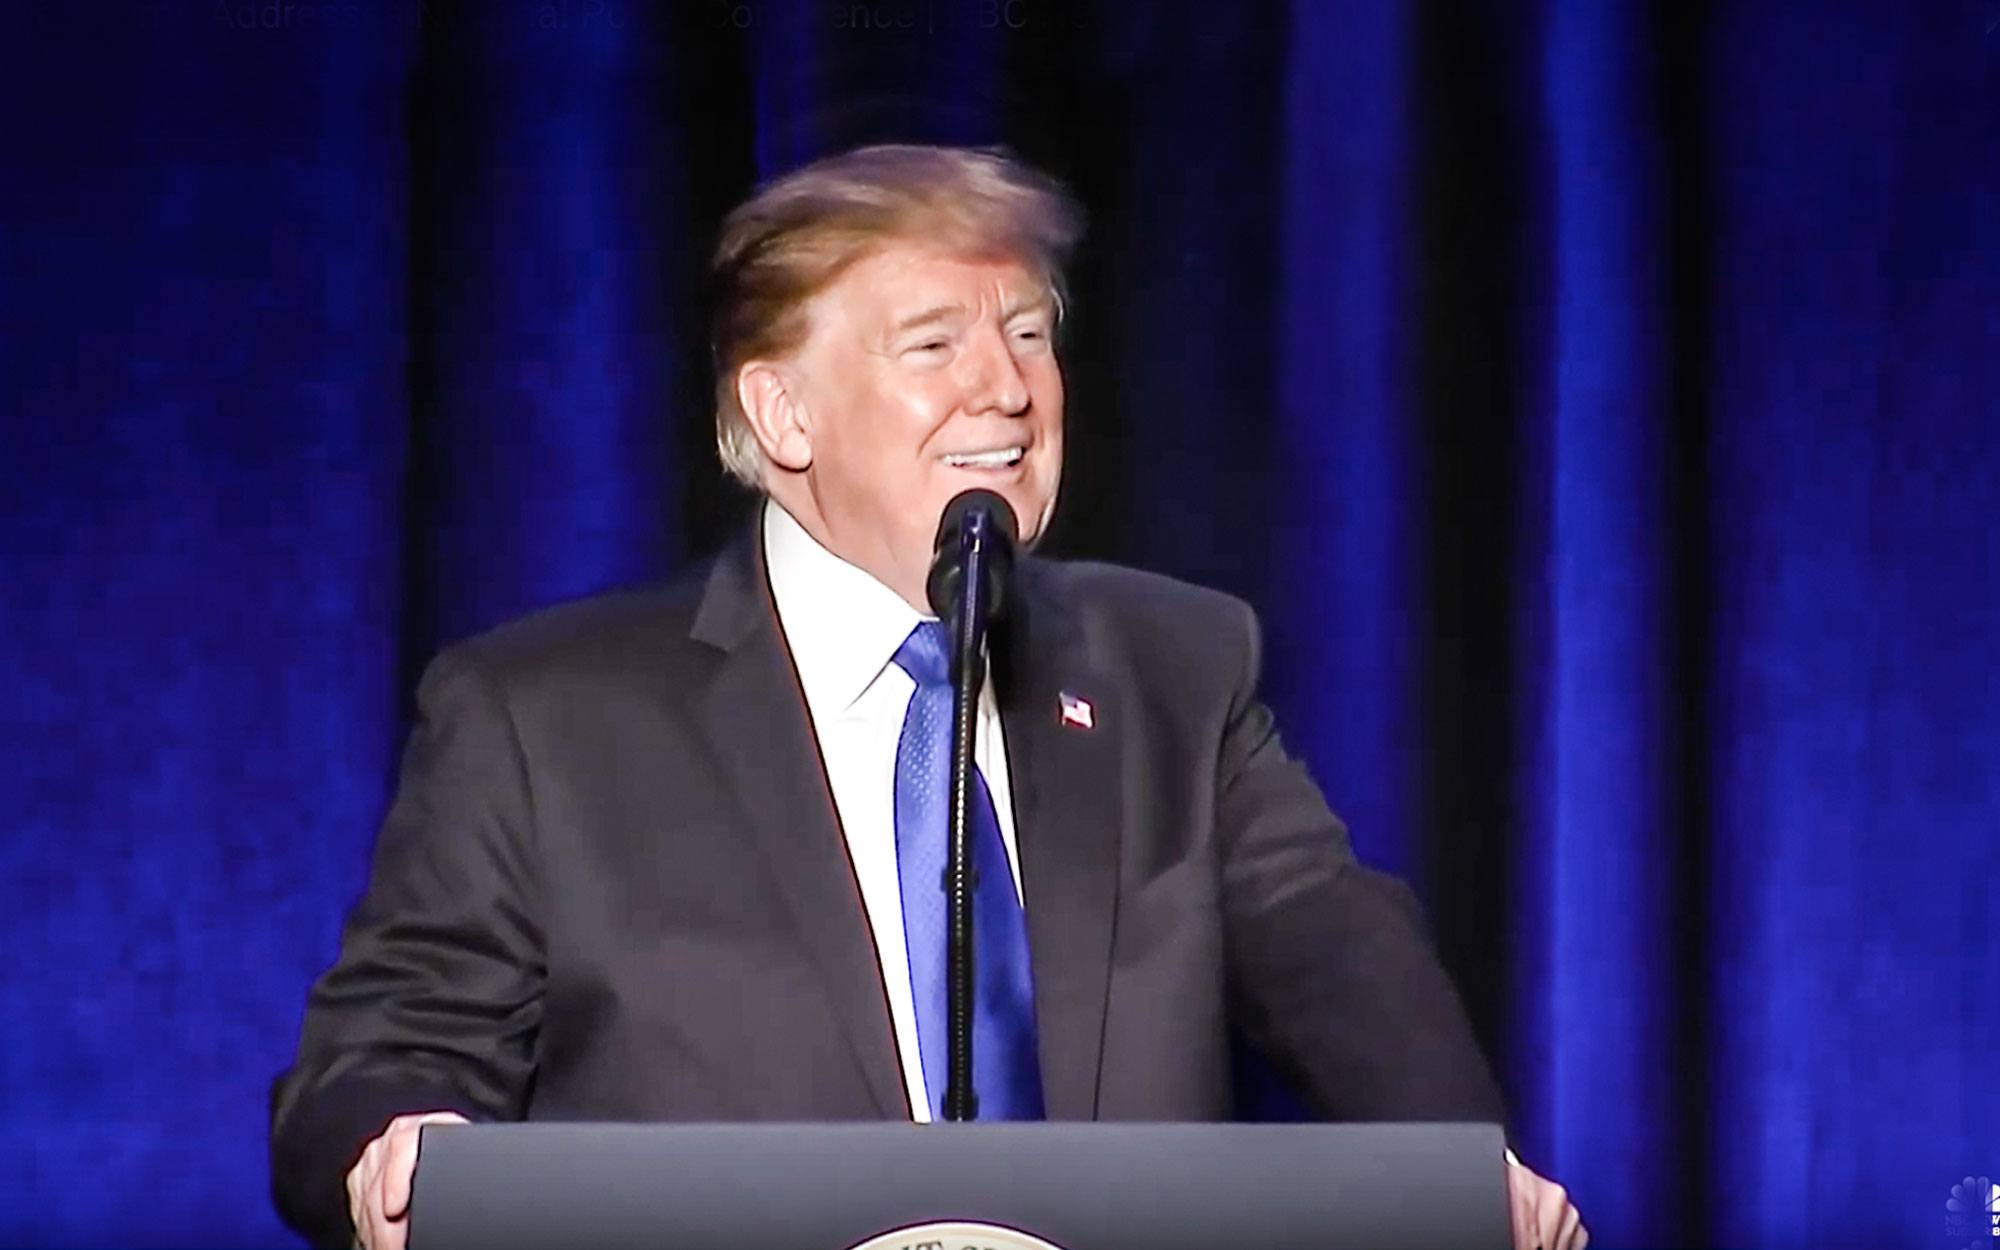 Trump Surprised Bride and Groom at Wedding as Attendees Broke into Chants of 'USA!'